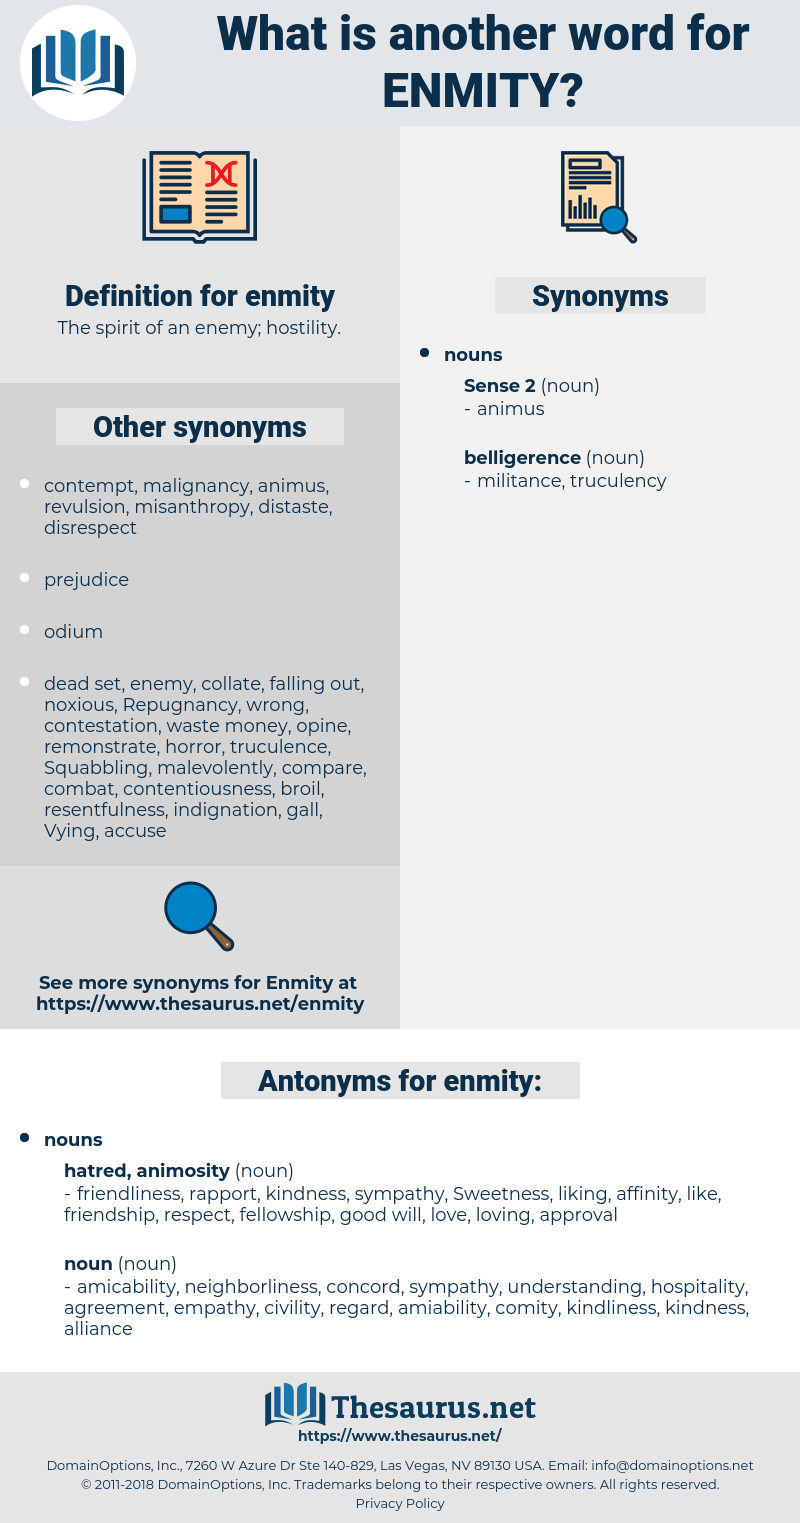 enmity, synonym enmity, another word for enmity, words like enmity, thesaurus enmity